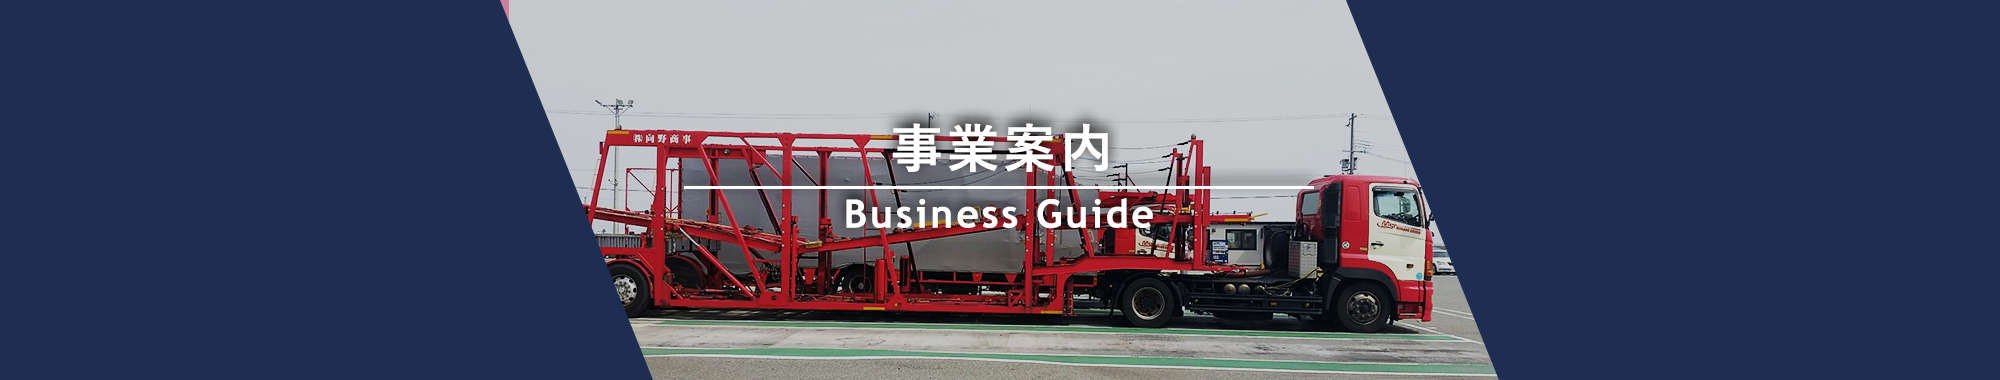 事業内容 Business Guide